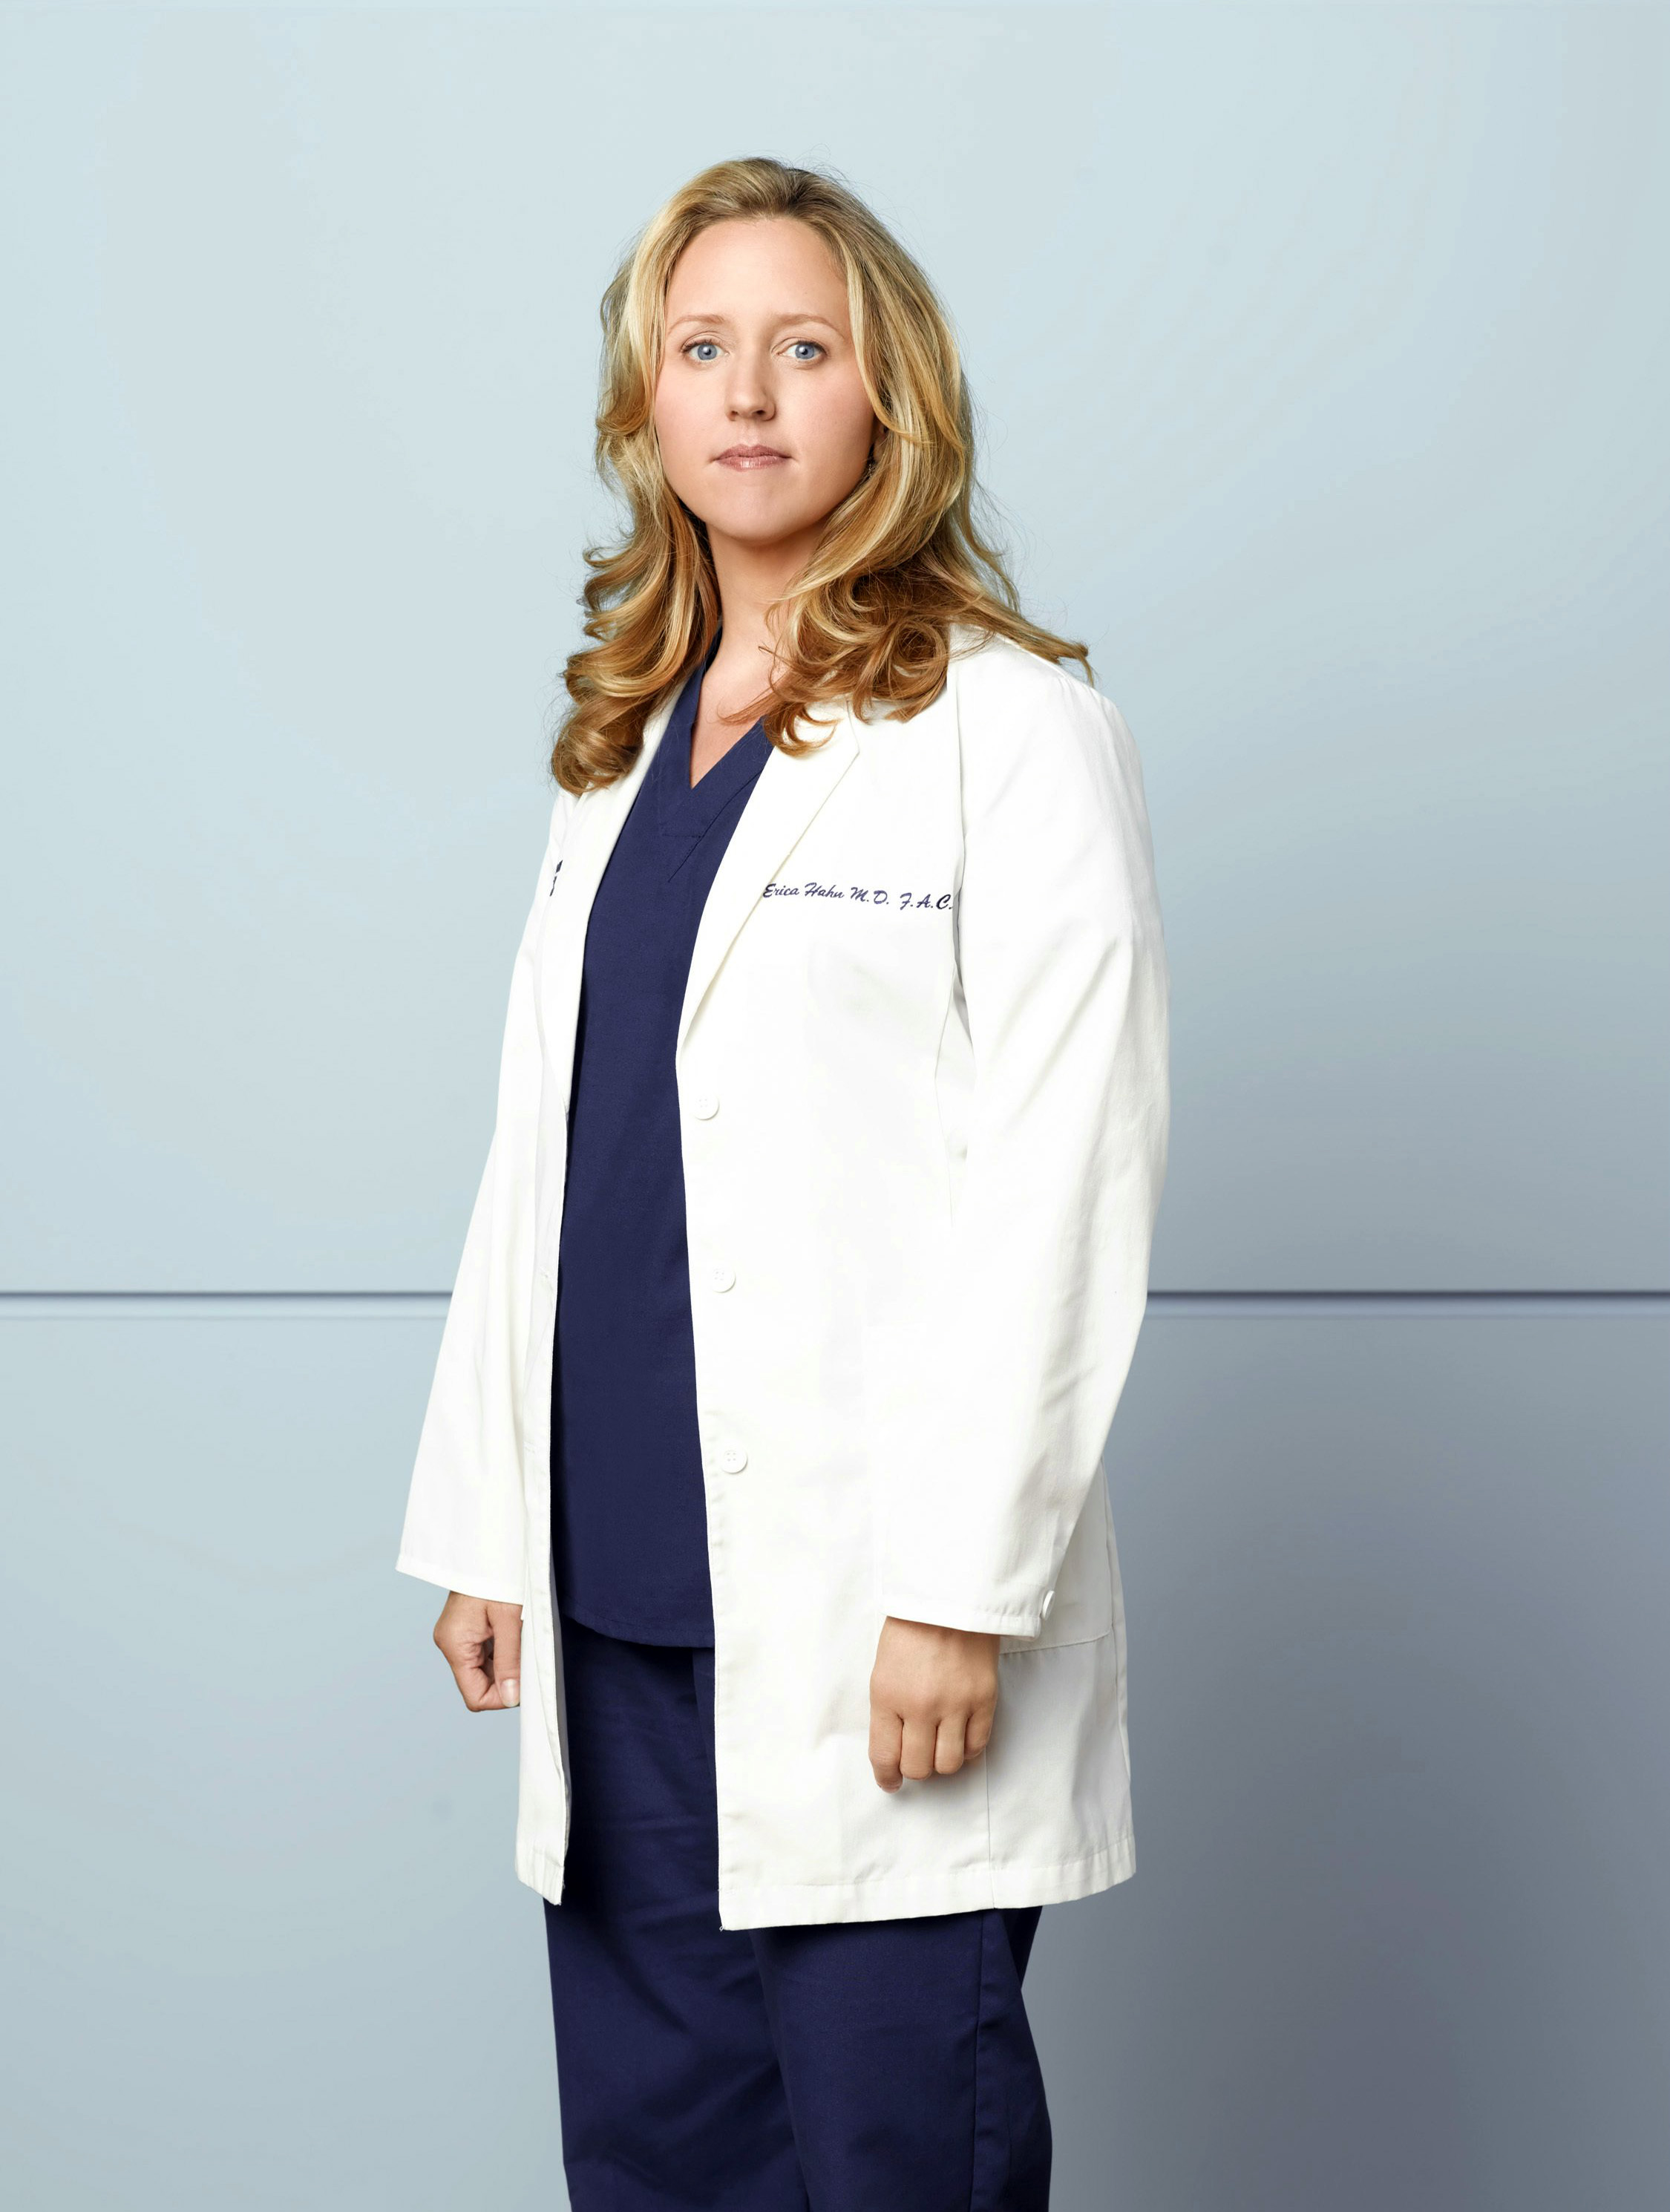 Greys Anatomy S04 Brooke Smith 1 Dvdbash Dvdbash